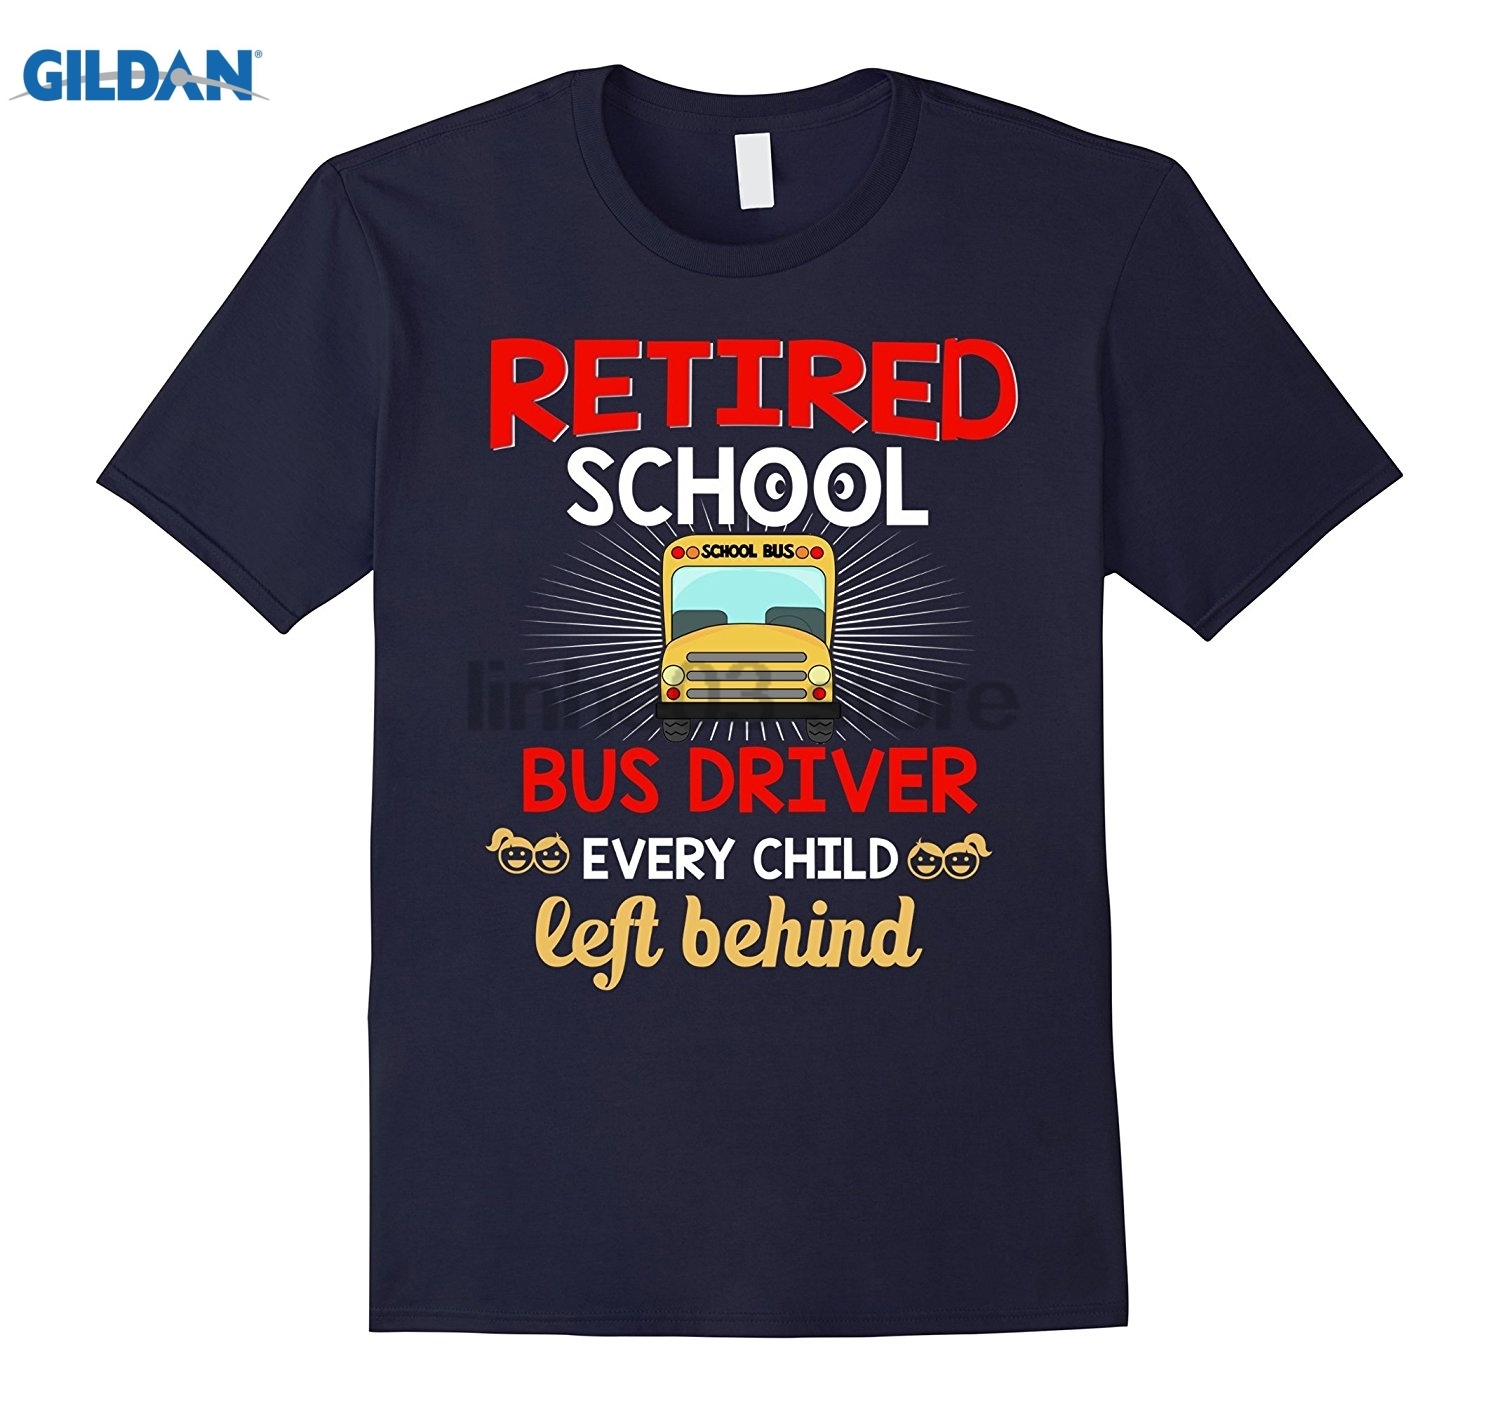 GILDAN Retirement Gifts School Bus Driver Shirt Every Child Left glasses Womens T-shirt Dress female T-shirt